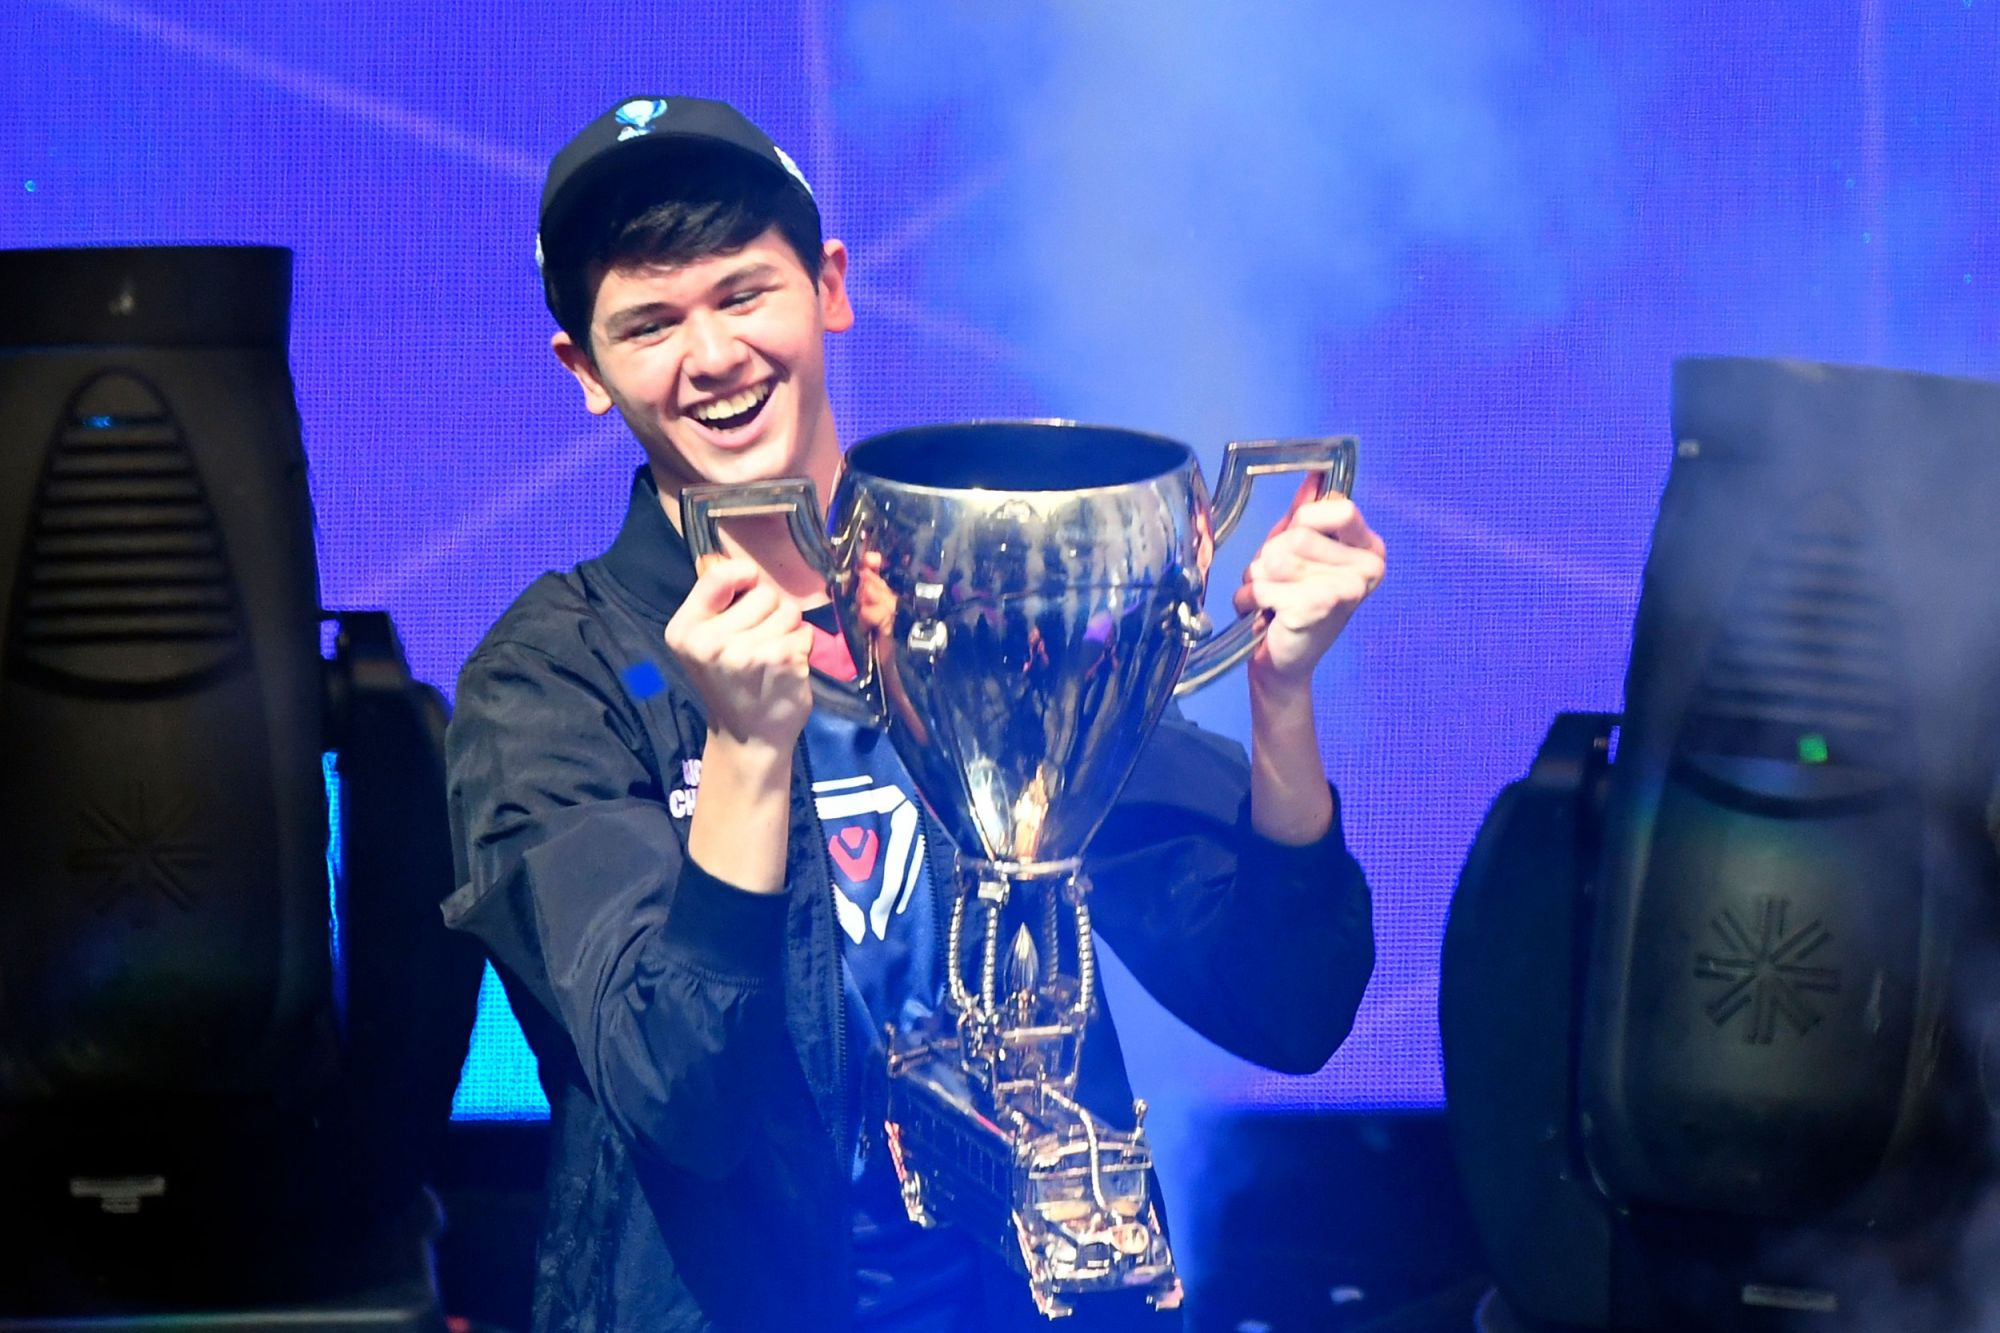 16-Year-Old Wins First Ever Fortnite World Cup and $3M